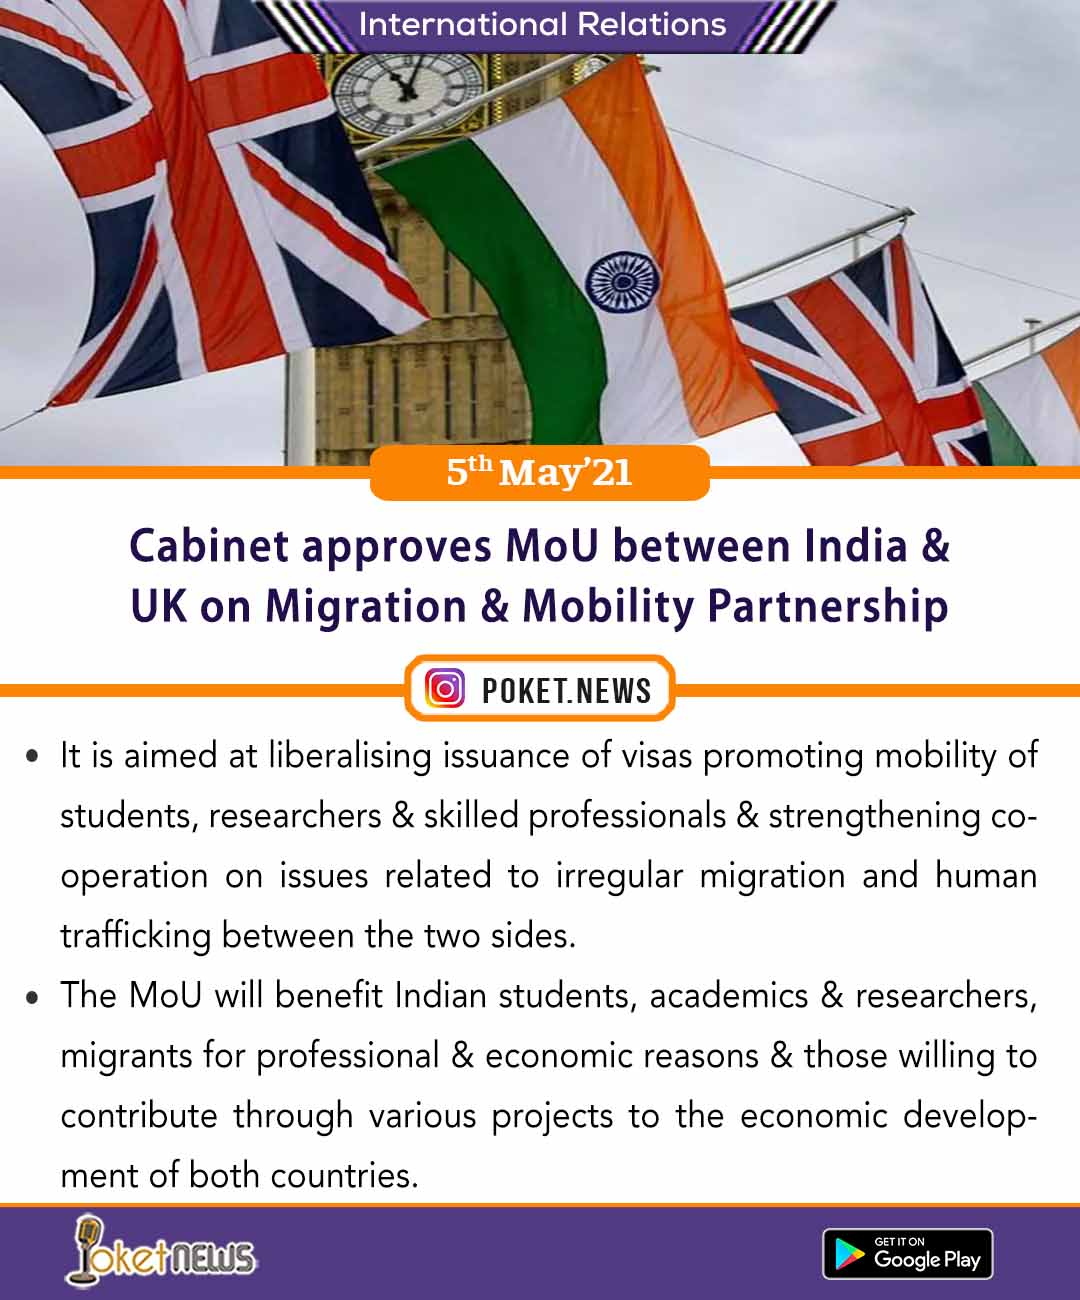 Cabinet approves MoU between India & UK on Migration & Mobility Partnership